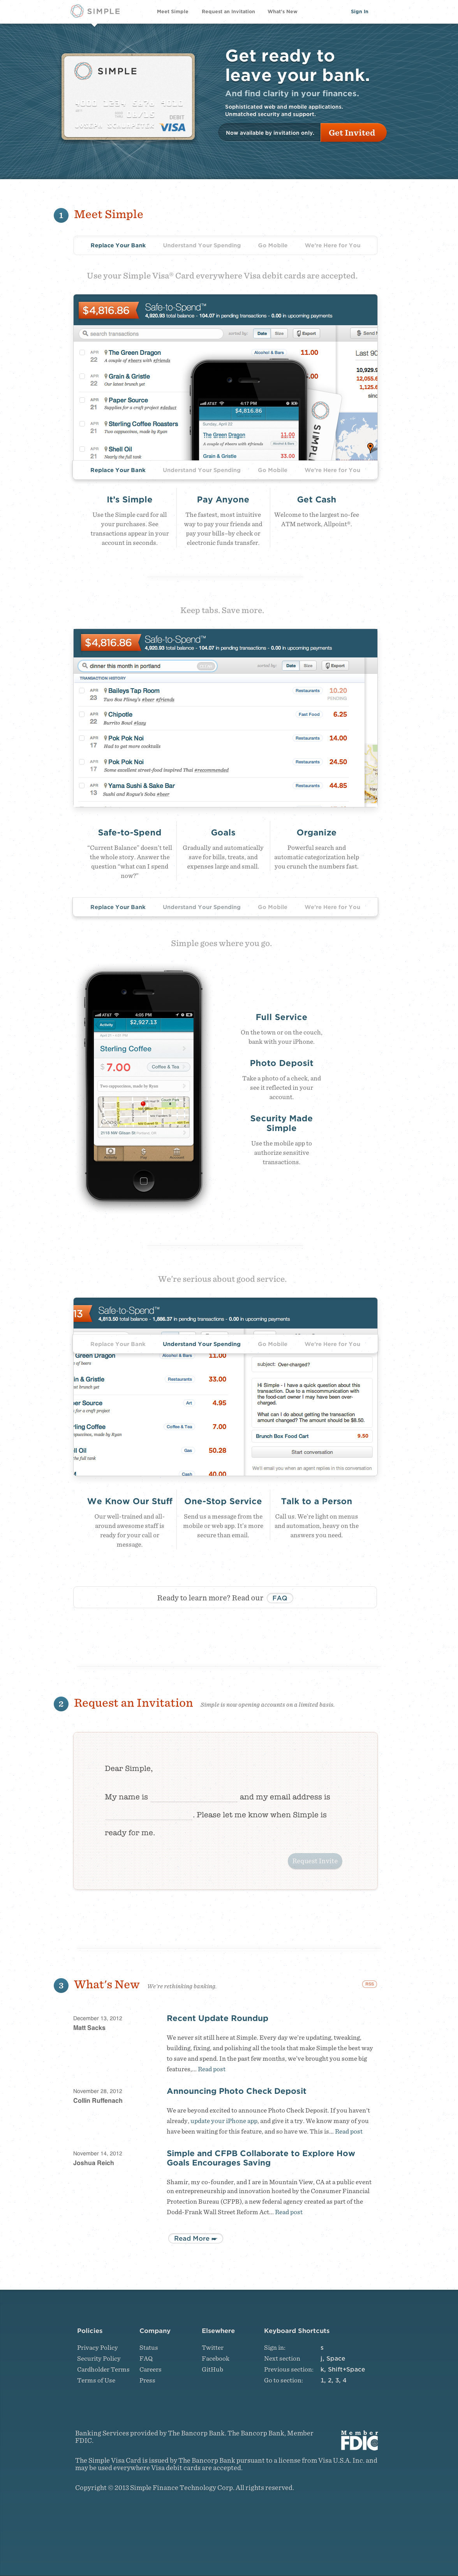 2012 Year-End Lists: What's the best UI design work you saw in 2012? - Quora